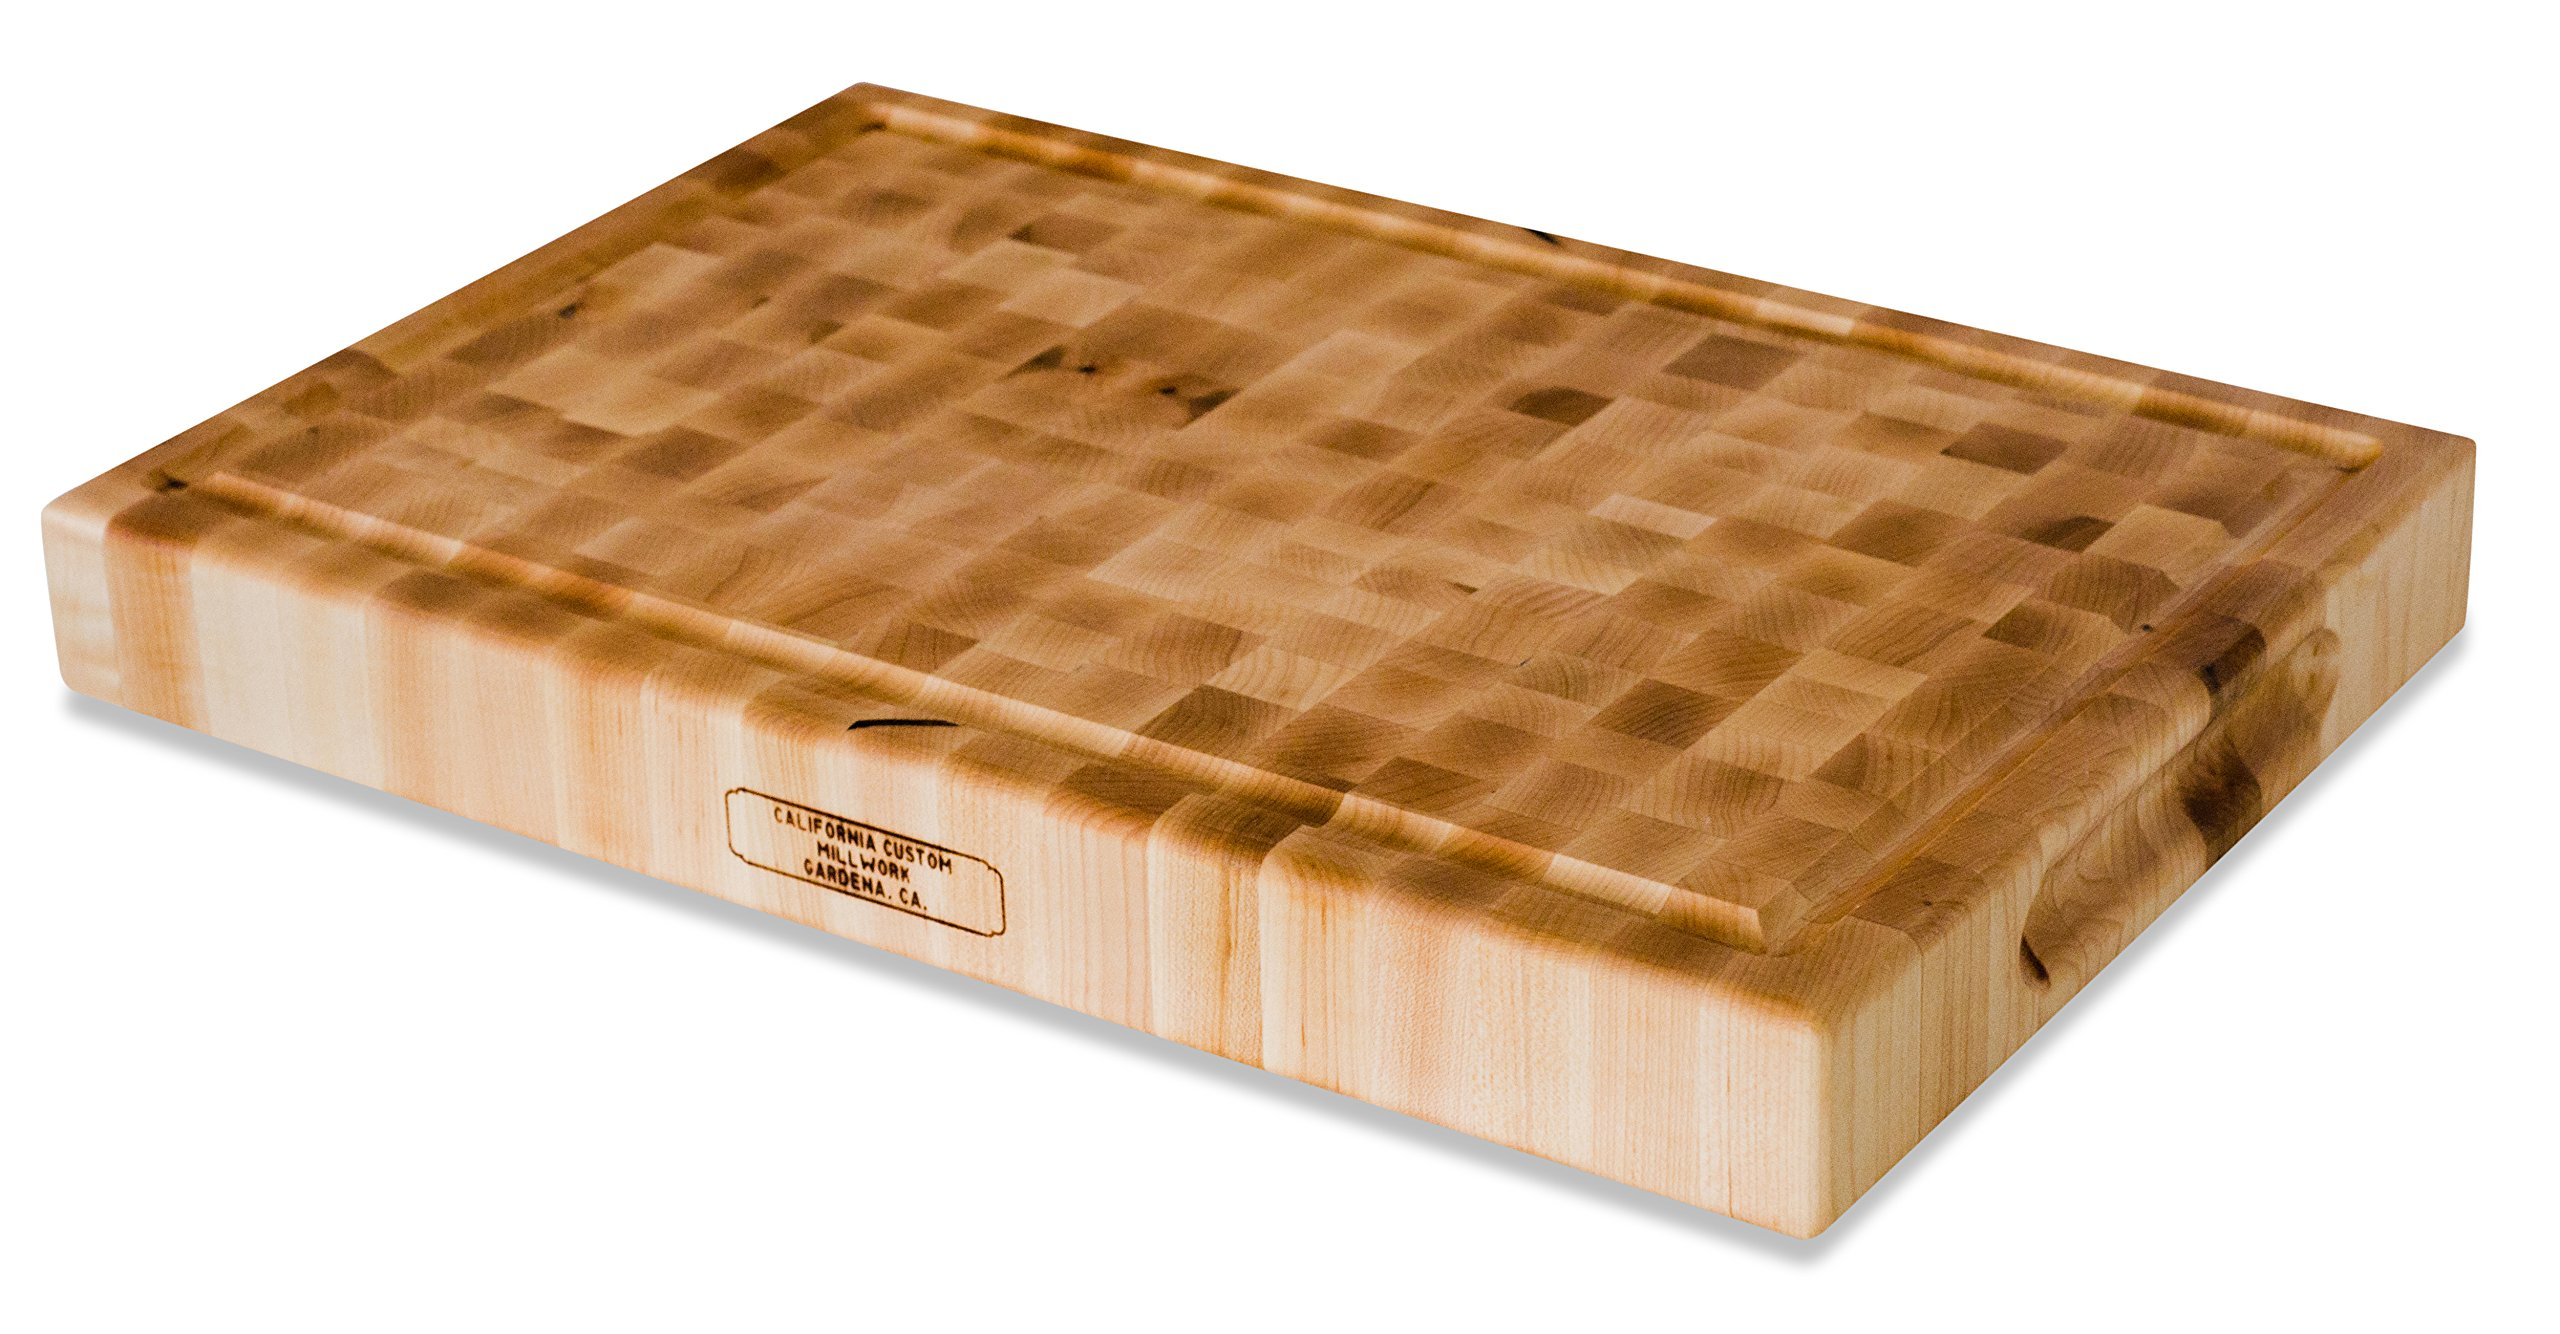 Large Wood End Grain Cutting Board With Juice Groove - 18x12x2 Reversible Maple Butcher Block Made in the USA by California Custom Millwork